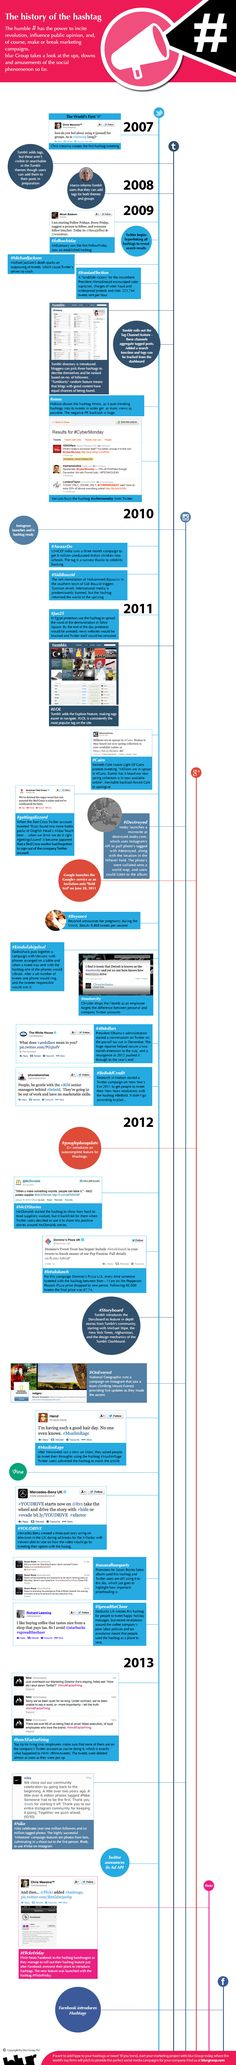 The Revolution Of #Hashtag #Infographic #SocialMedia